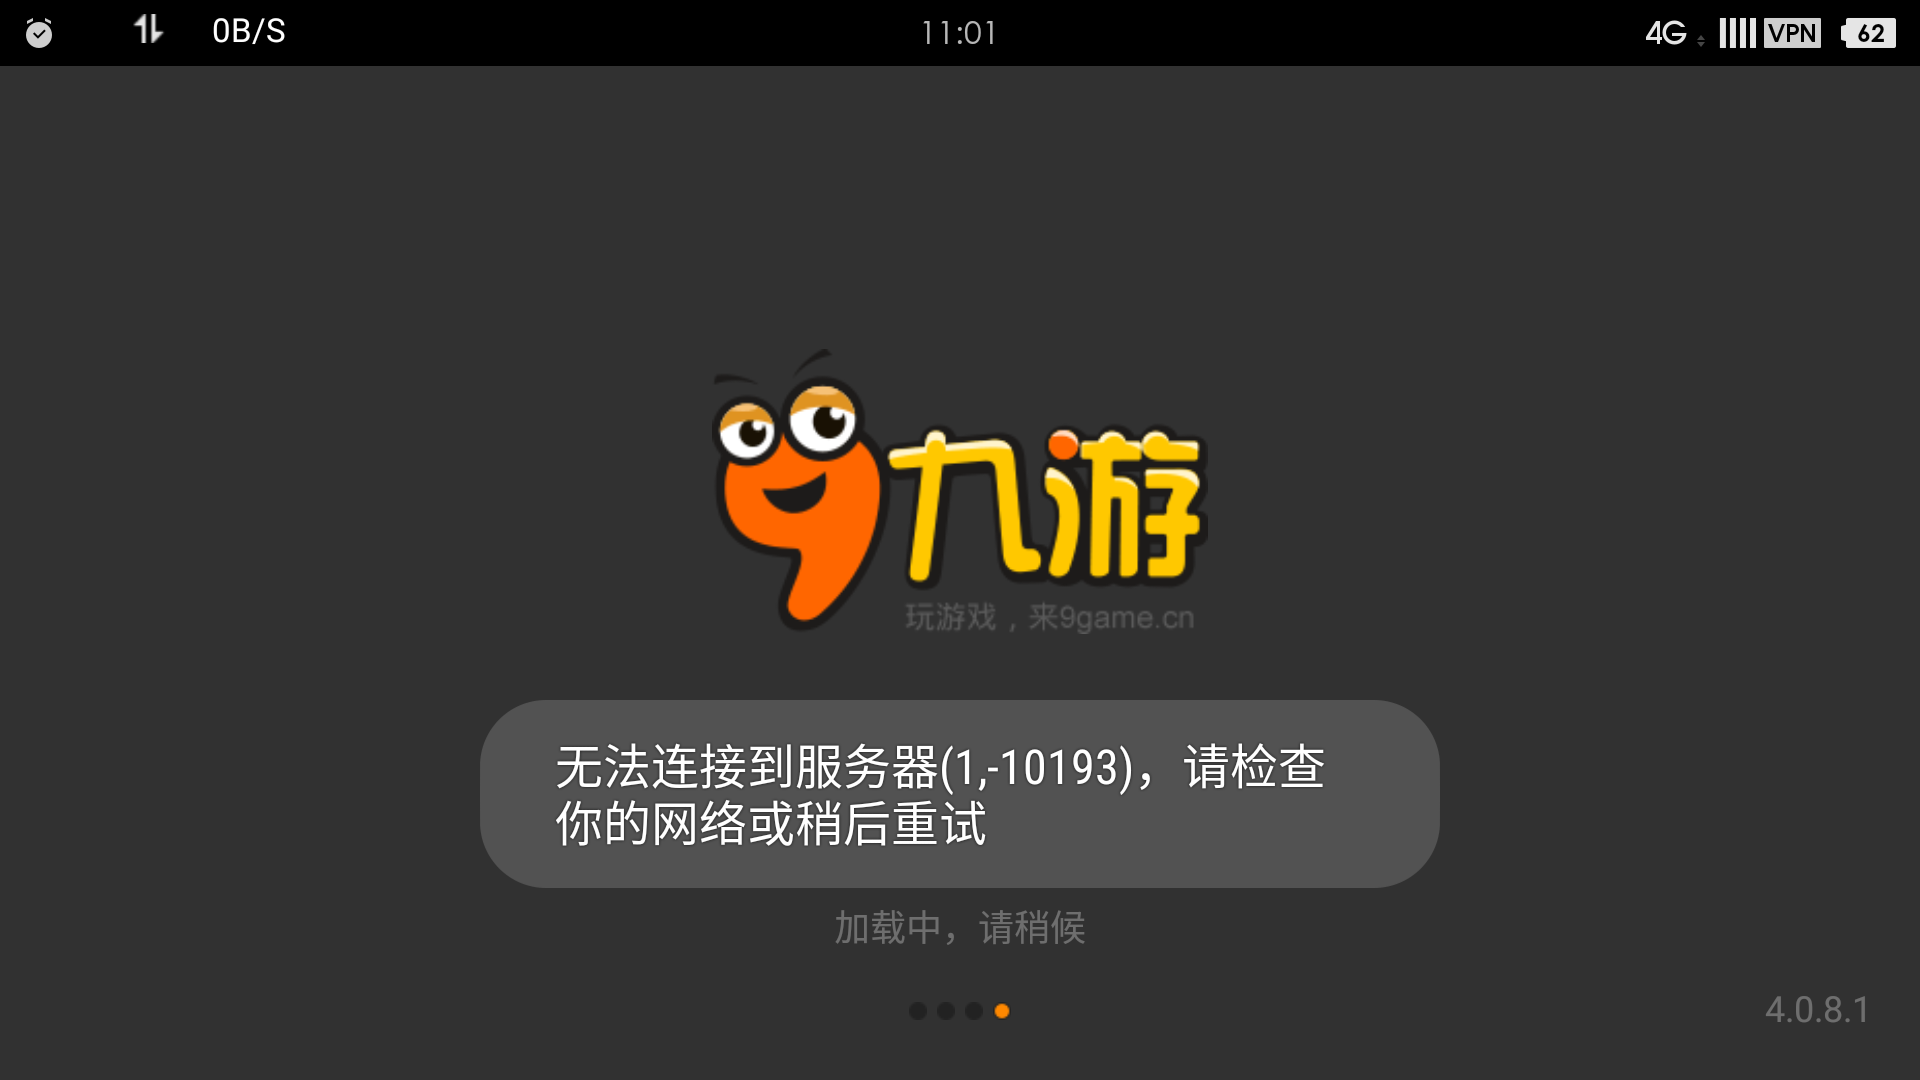 Screenshot_2015-10-22-11-01-01.png